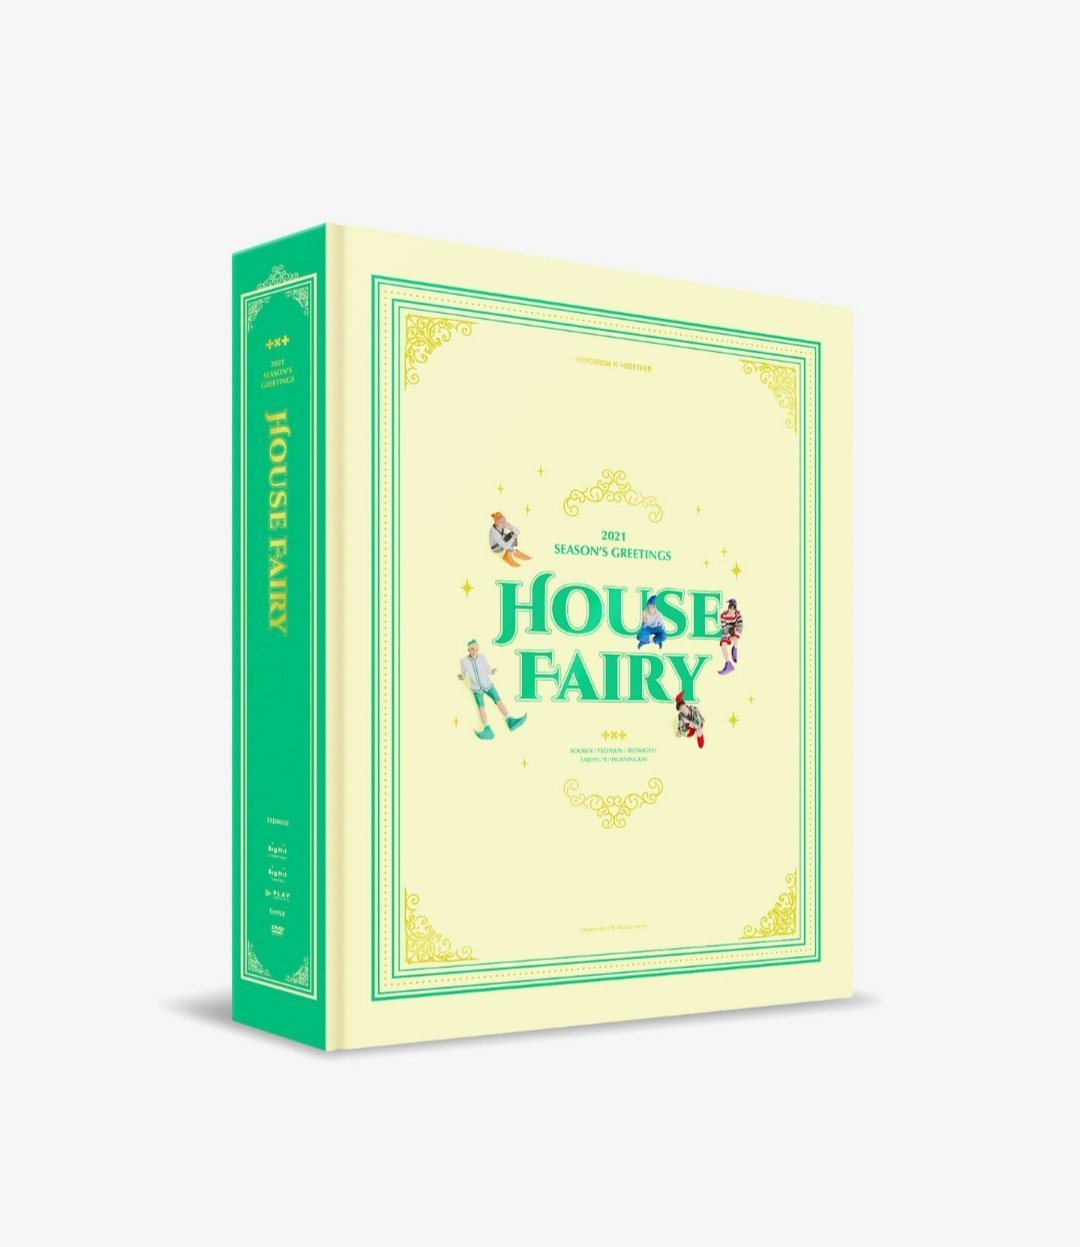 TXT '2021 SEASON'S GREETINGS HOUSE FAIRY'